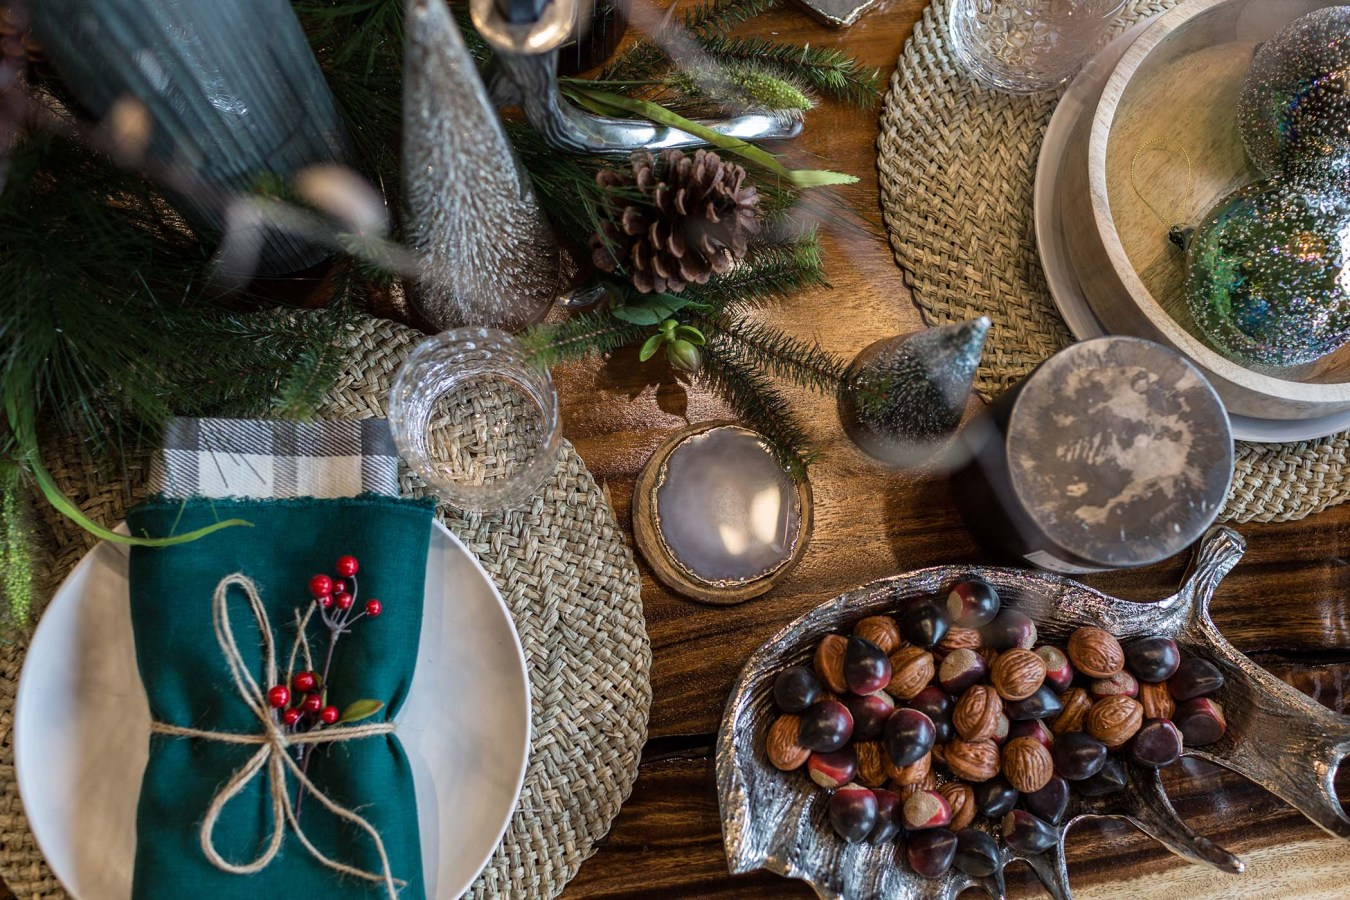 https://www.collectivedg.com/blog/how-to-decorate-your-home-for-the-holidays